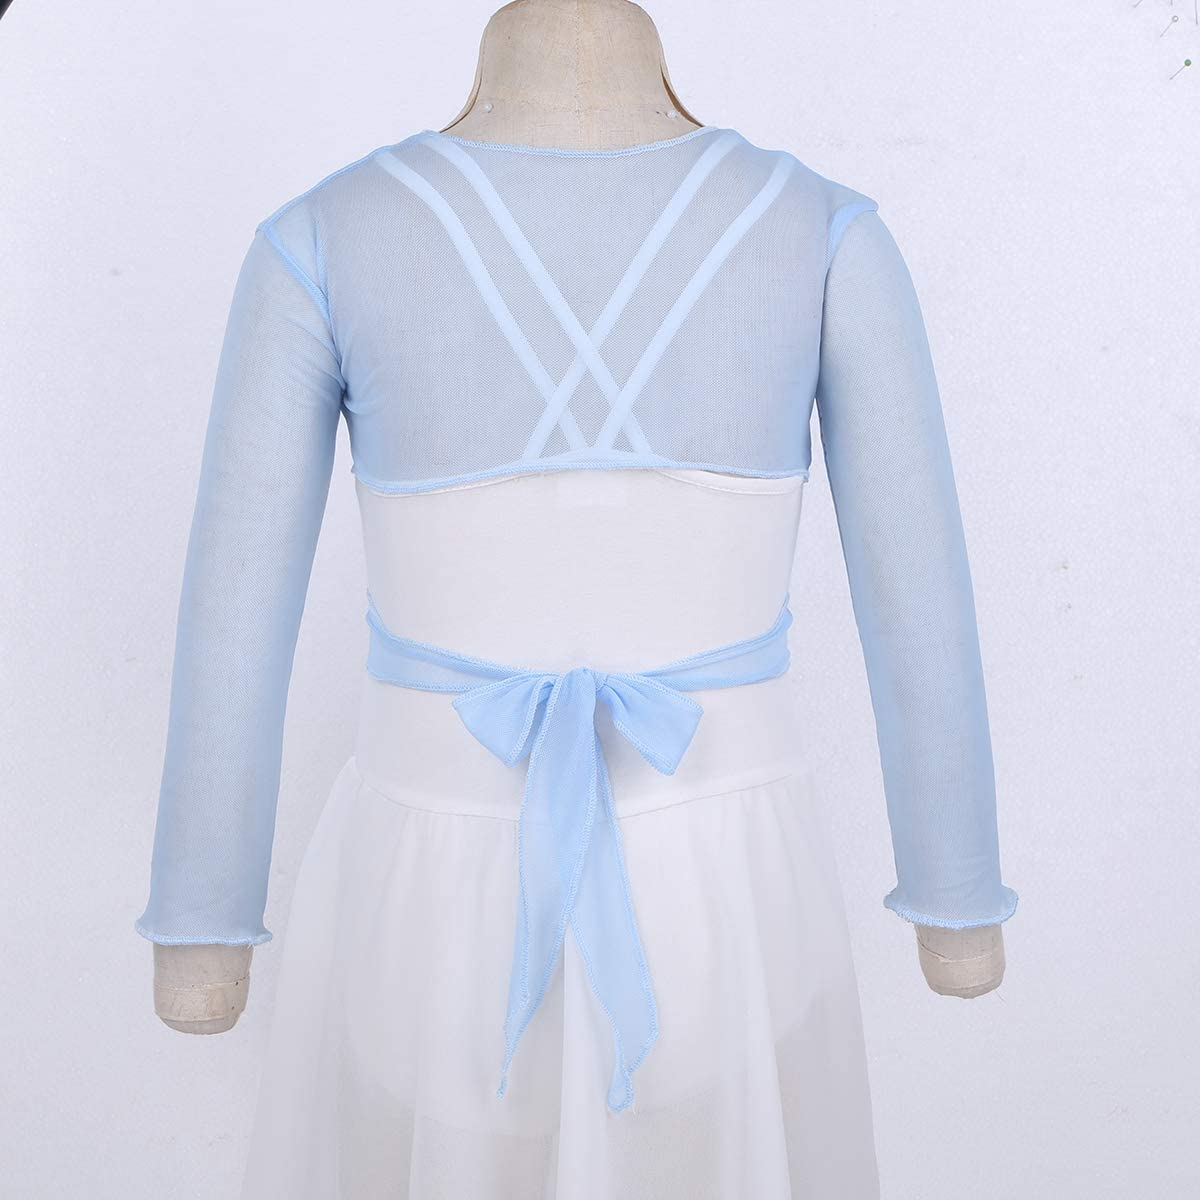 YOOJIA Kids Girls Long Sleeve Ballet Wrap Crop Tops Sweater Gymnastics Warm-up Dance wear Dress Cardigan Bolero